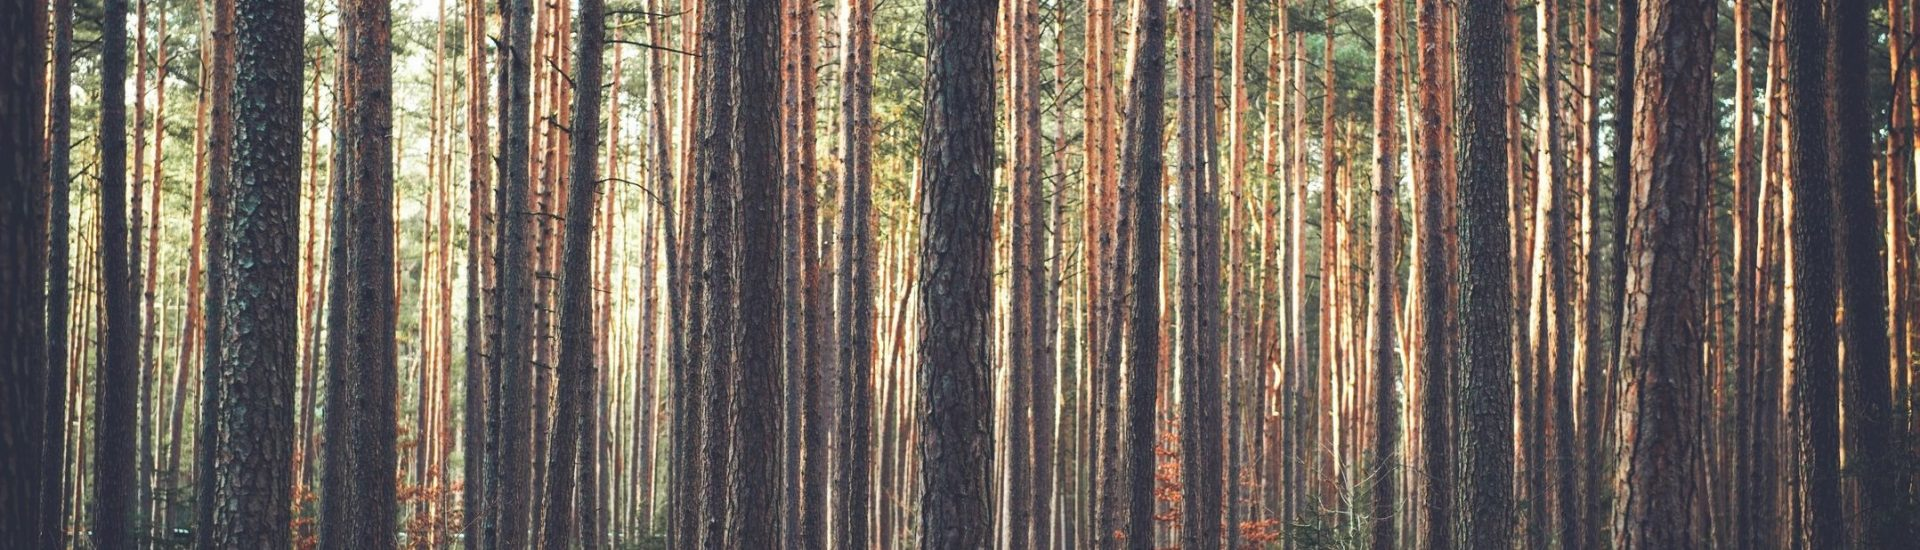 Image of woods like those run by DC widow blog writer Marjorie Brimley